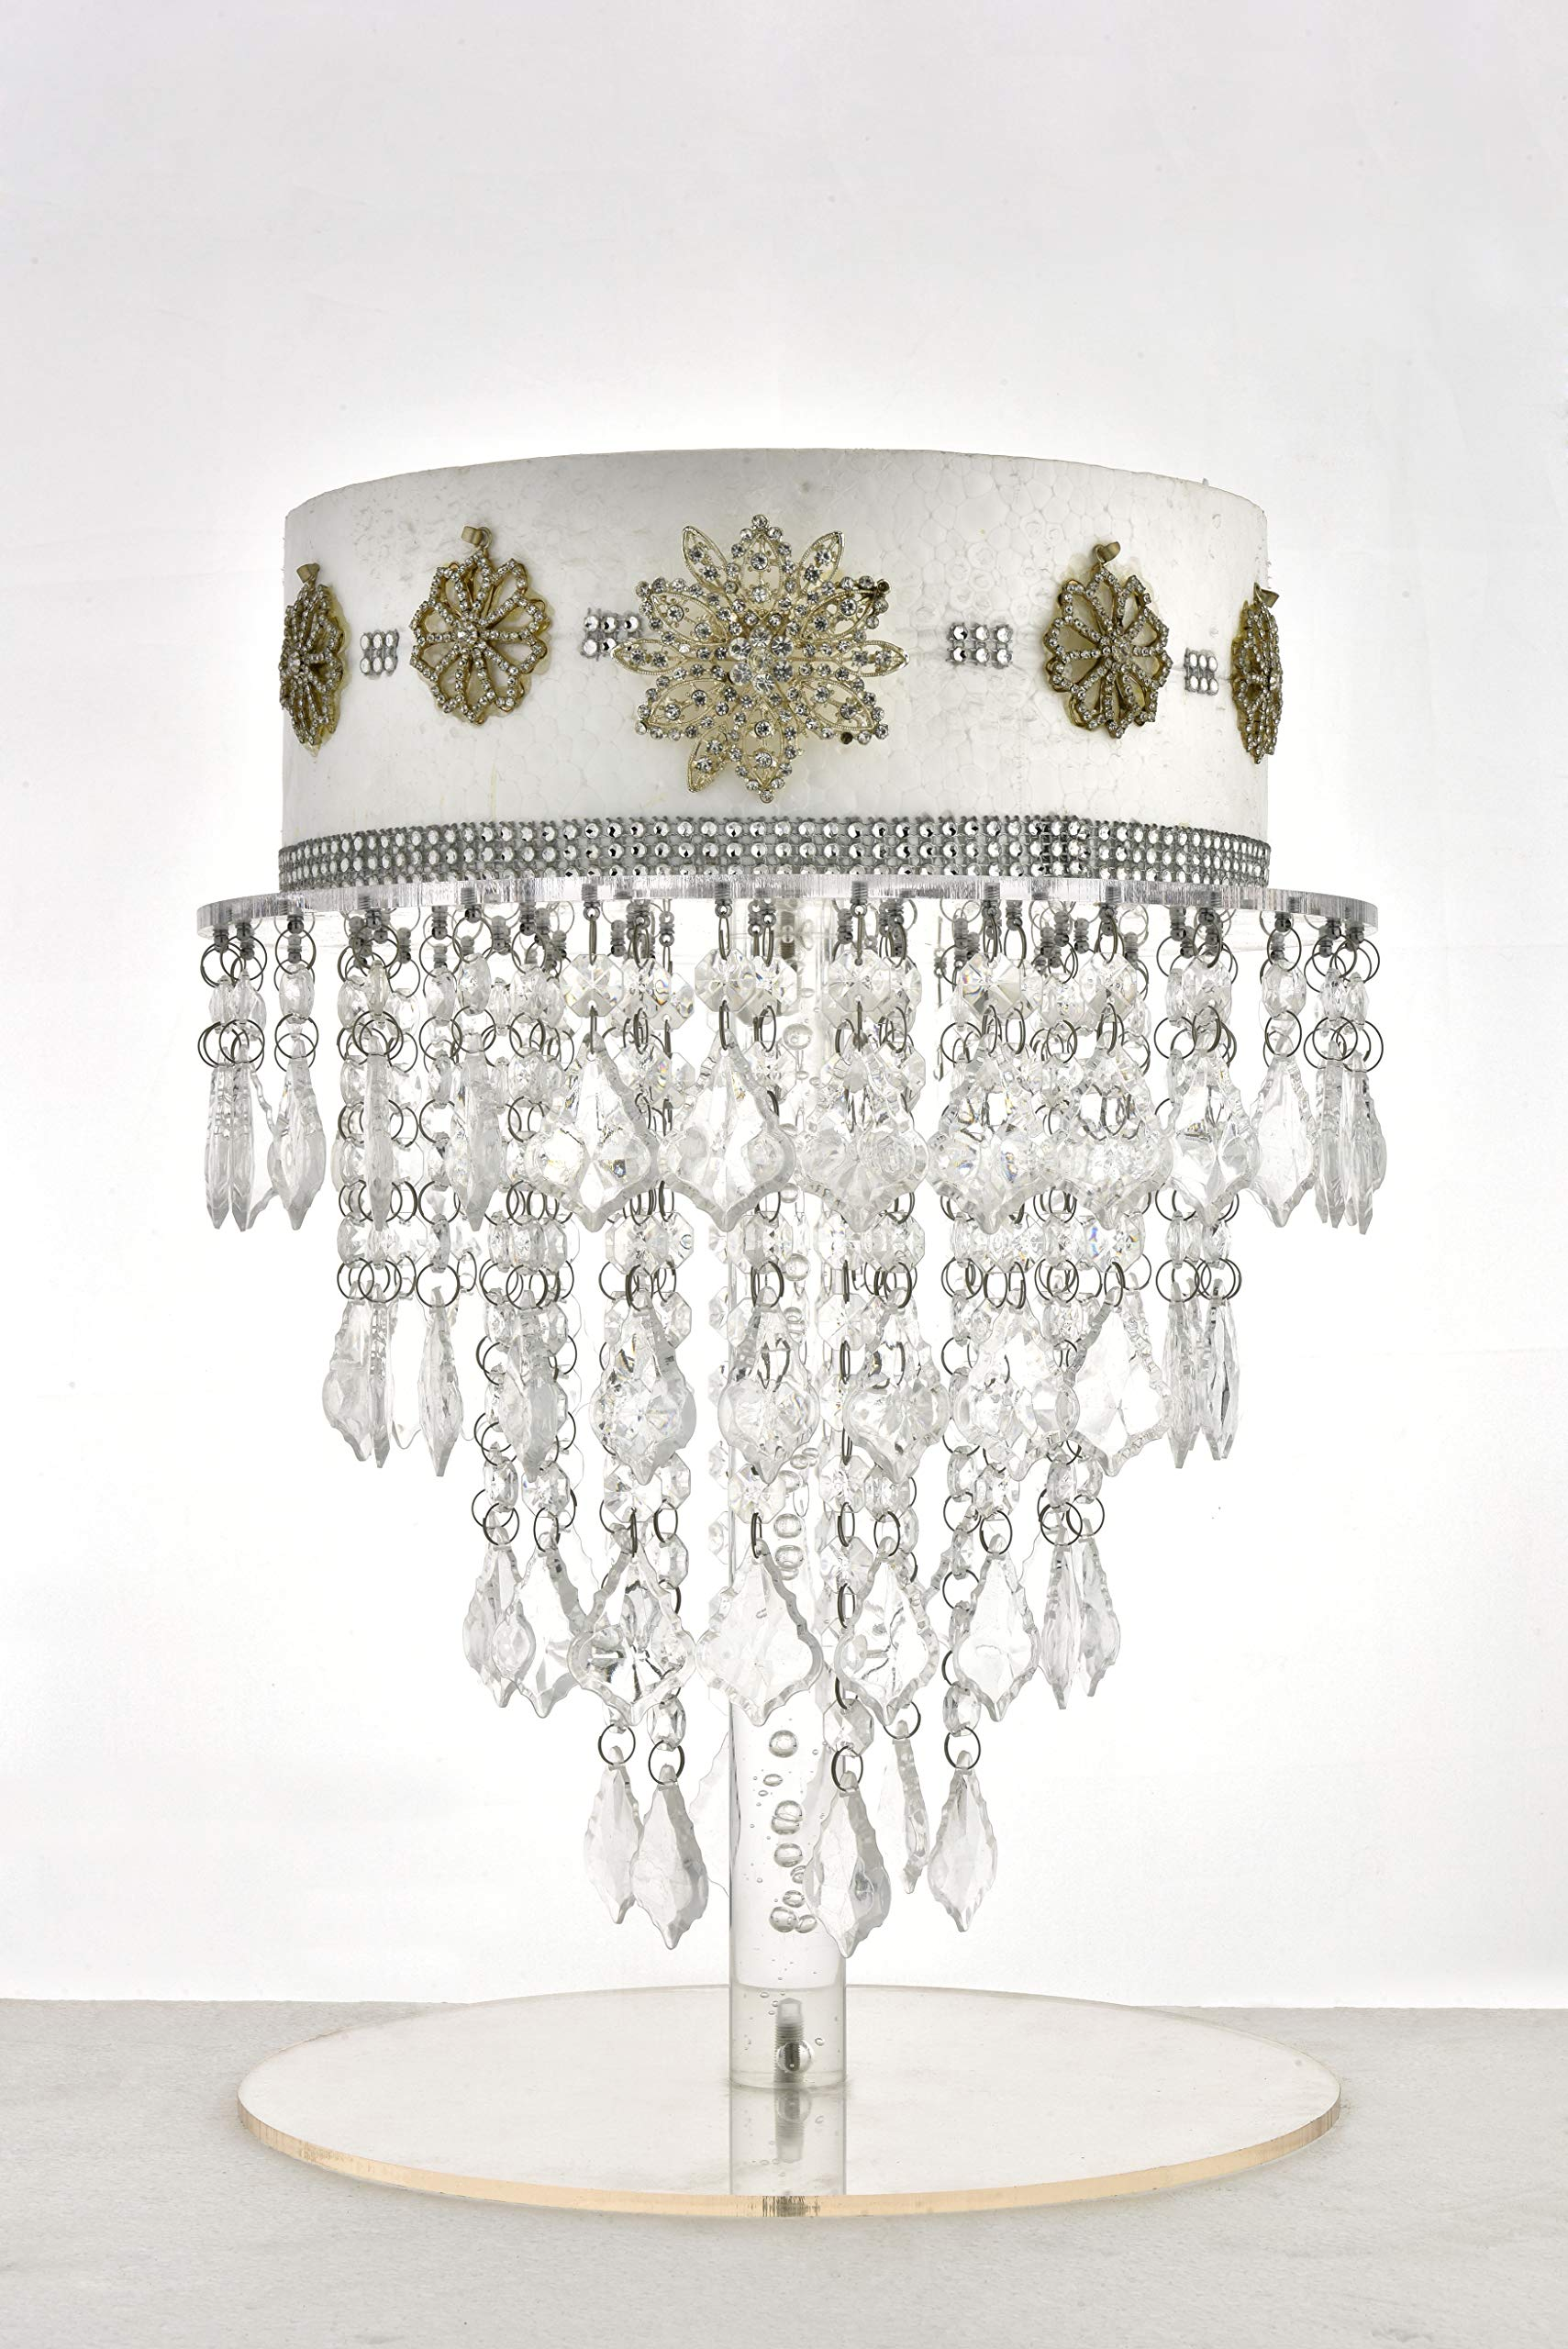 Butterflyevent Crystal Chandelier Cake stand Acrylic Cupcake Stand Wedding Table Centerpieces Decorations